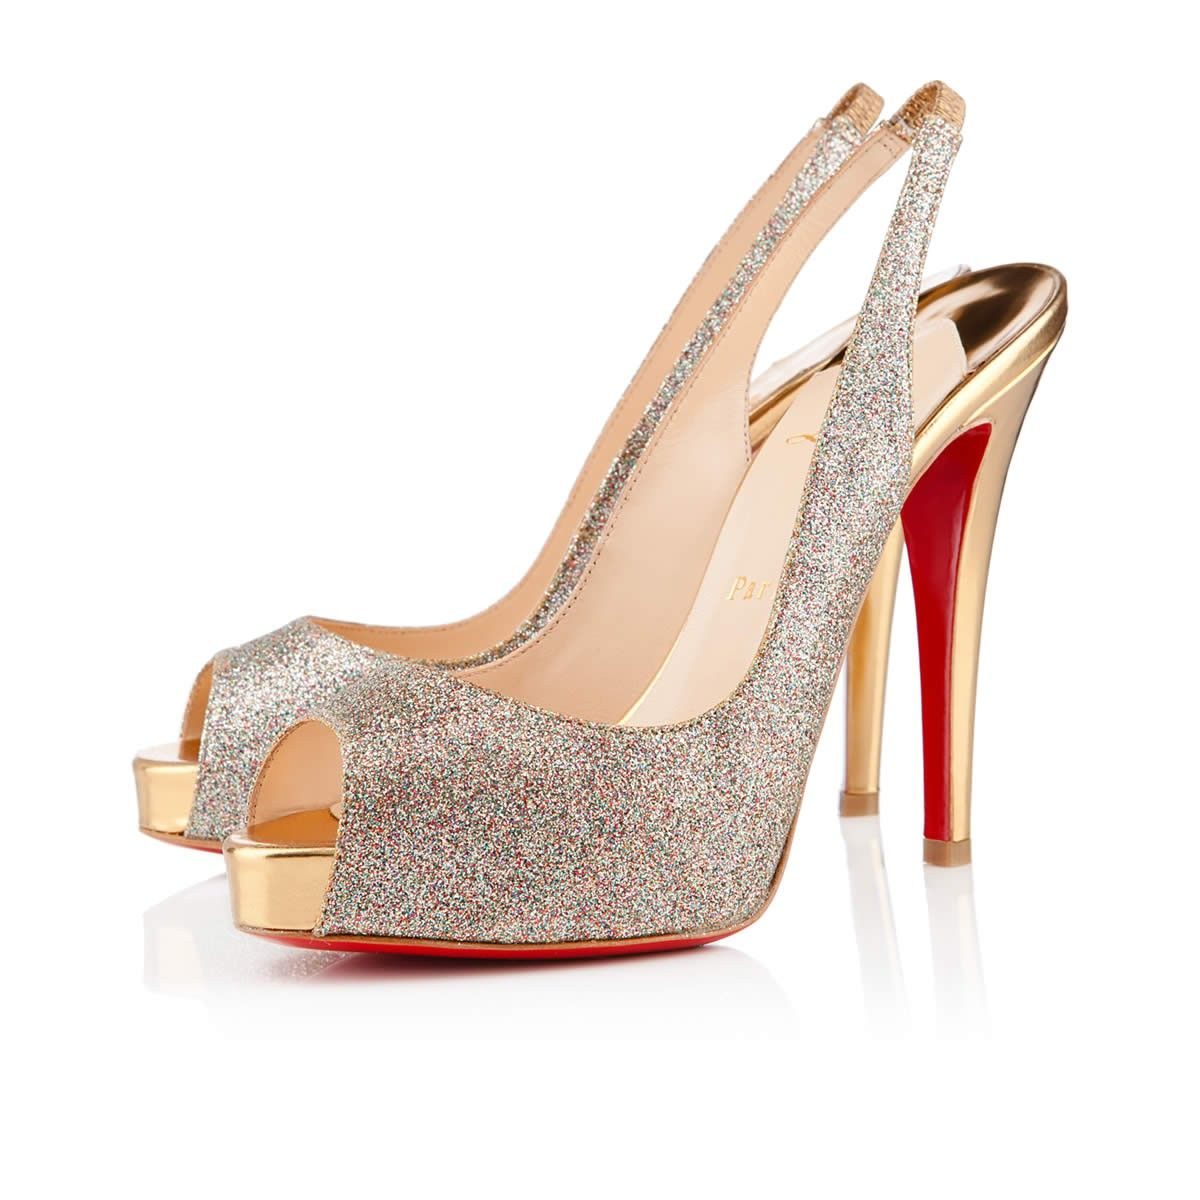 christian louboutin wedding shoes online